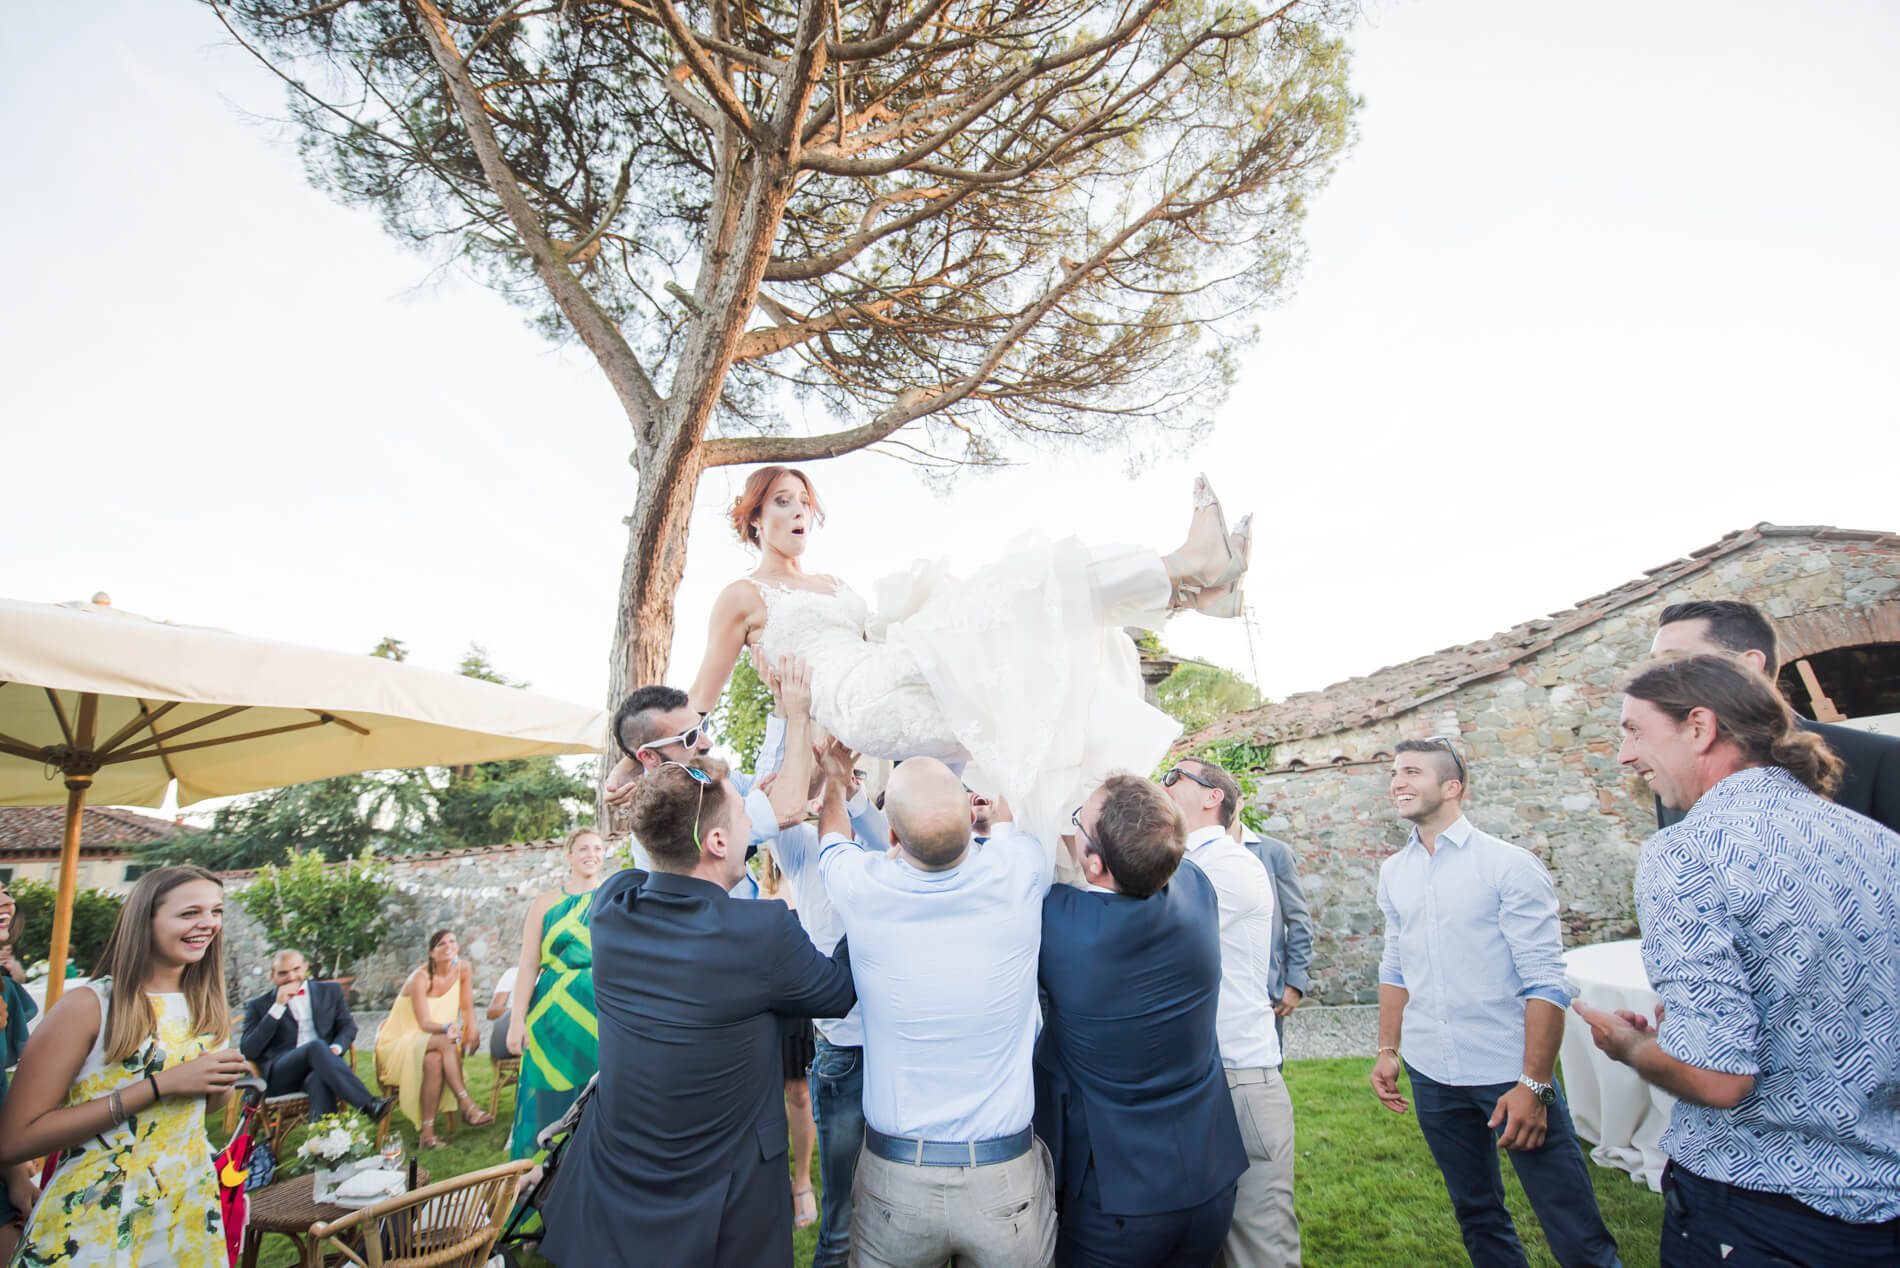 Wedding at Villa Baldaccini Lucca Wedding Photographer